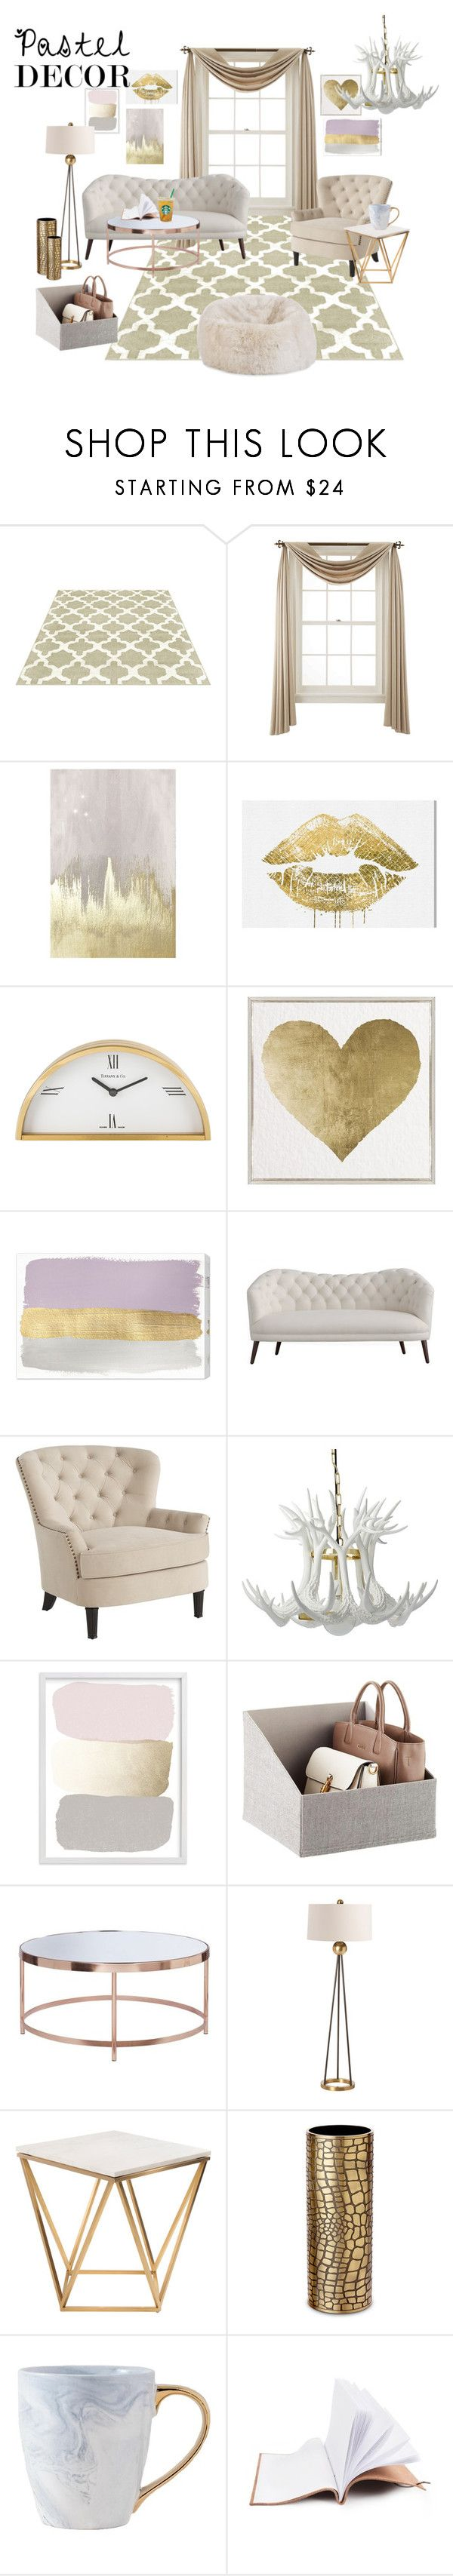 """""""pastel tones @ home"""" by rozigurl-rb ❤ liked on Polyvore featuring interior, interiors, interior design, home, home decor, interior decorating, Liz Claiborne, Oliver Gal Artist Co., Tiffany & Co. and Pier 1 Imports"""